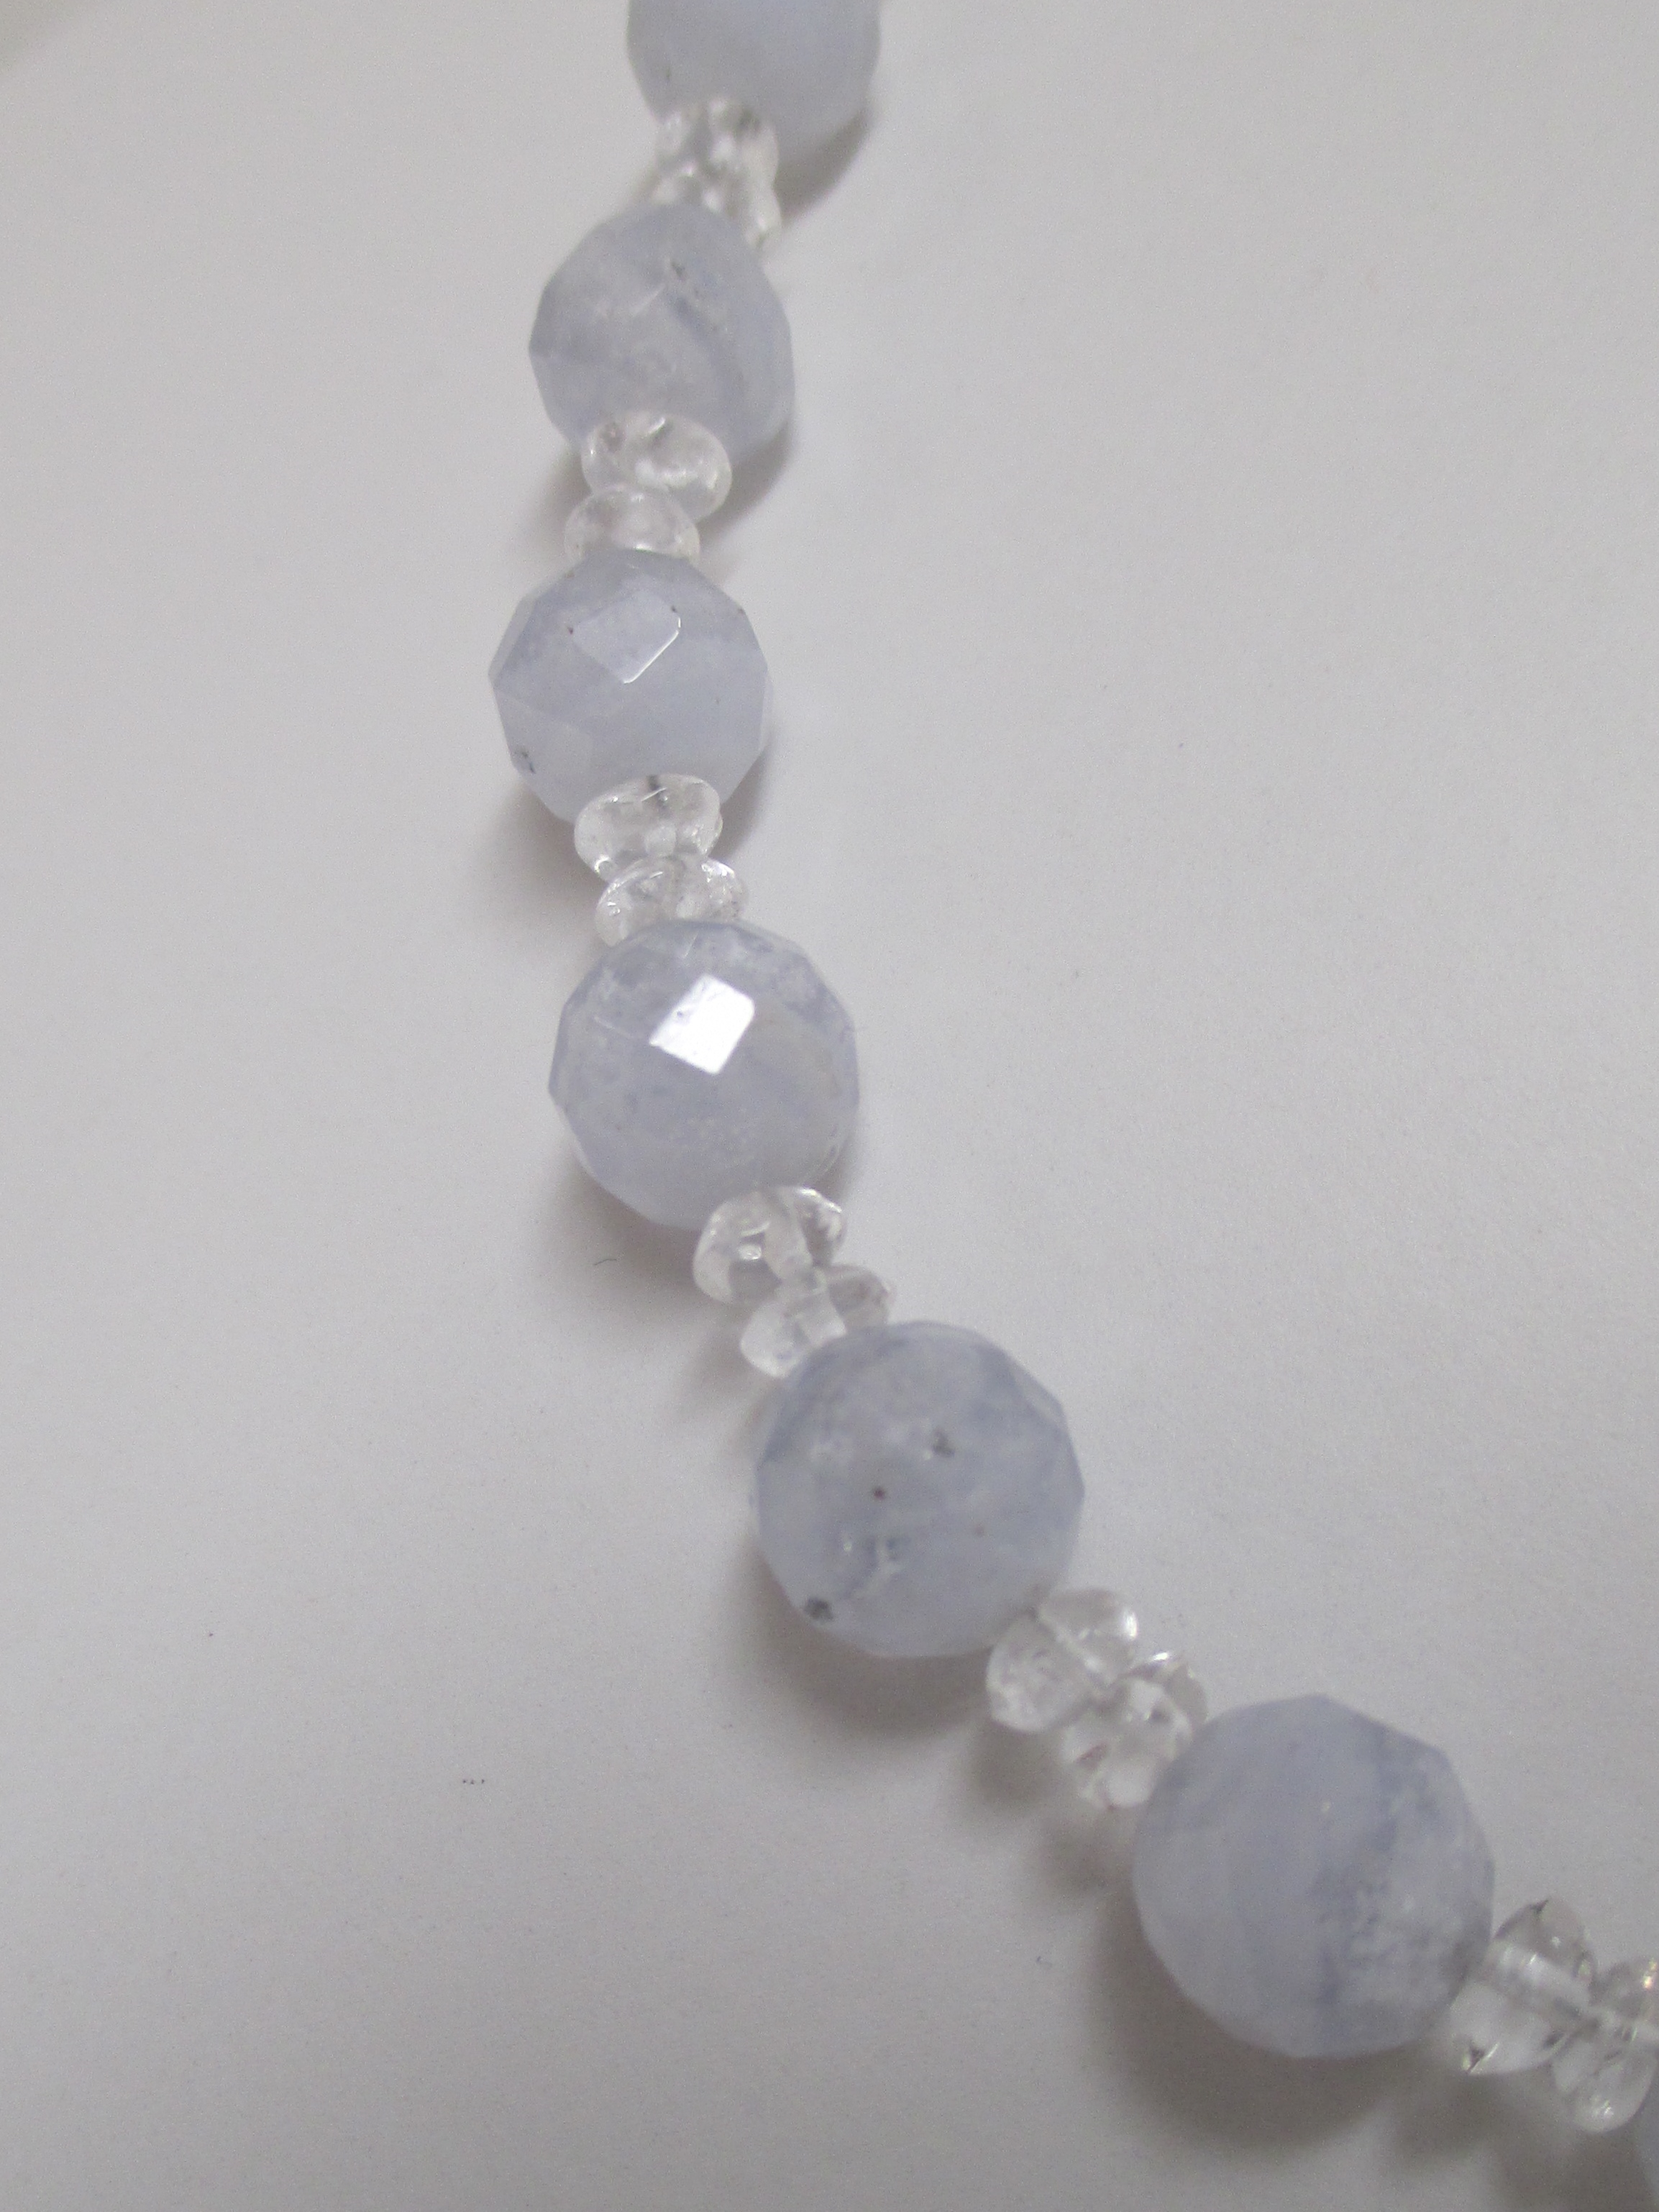 Blue Lace Agate And Quartz Necklace Or Set Made By Marianne